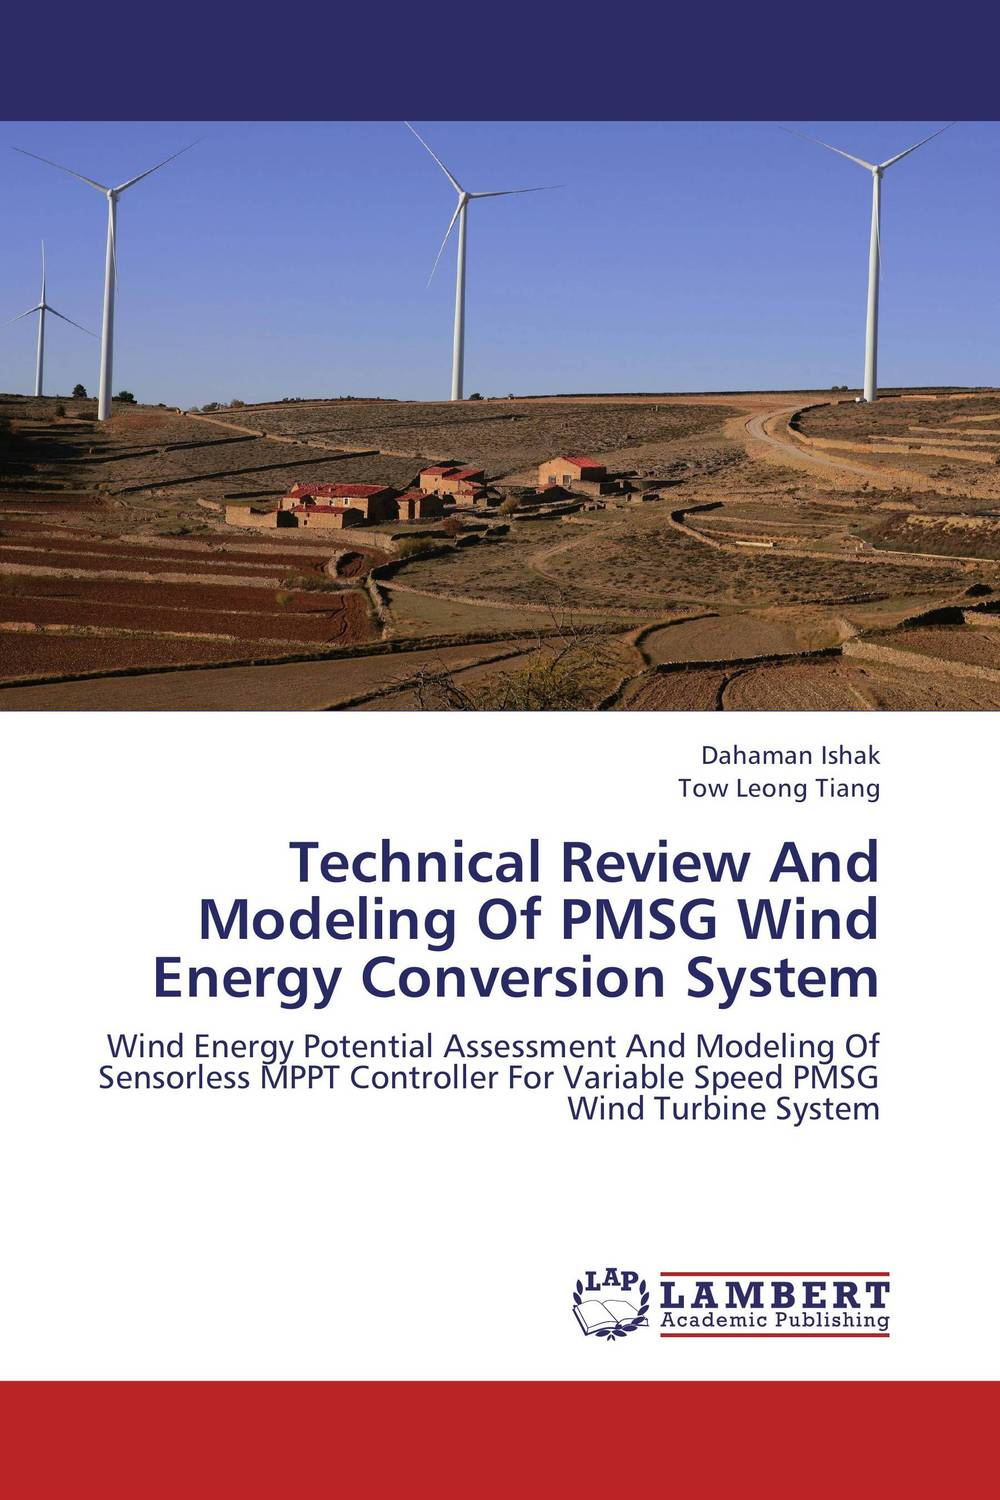 Technical Review And Modeling Of PMSG Wind Energy Conversion System wind energy generation modeling for planning of electric power system